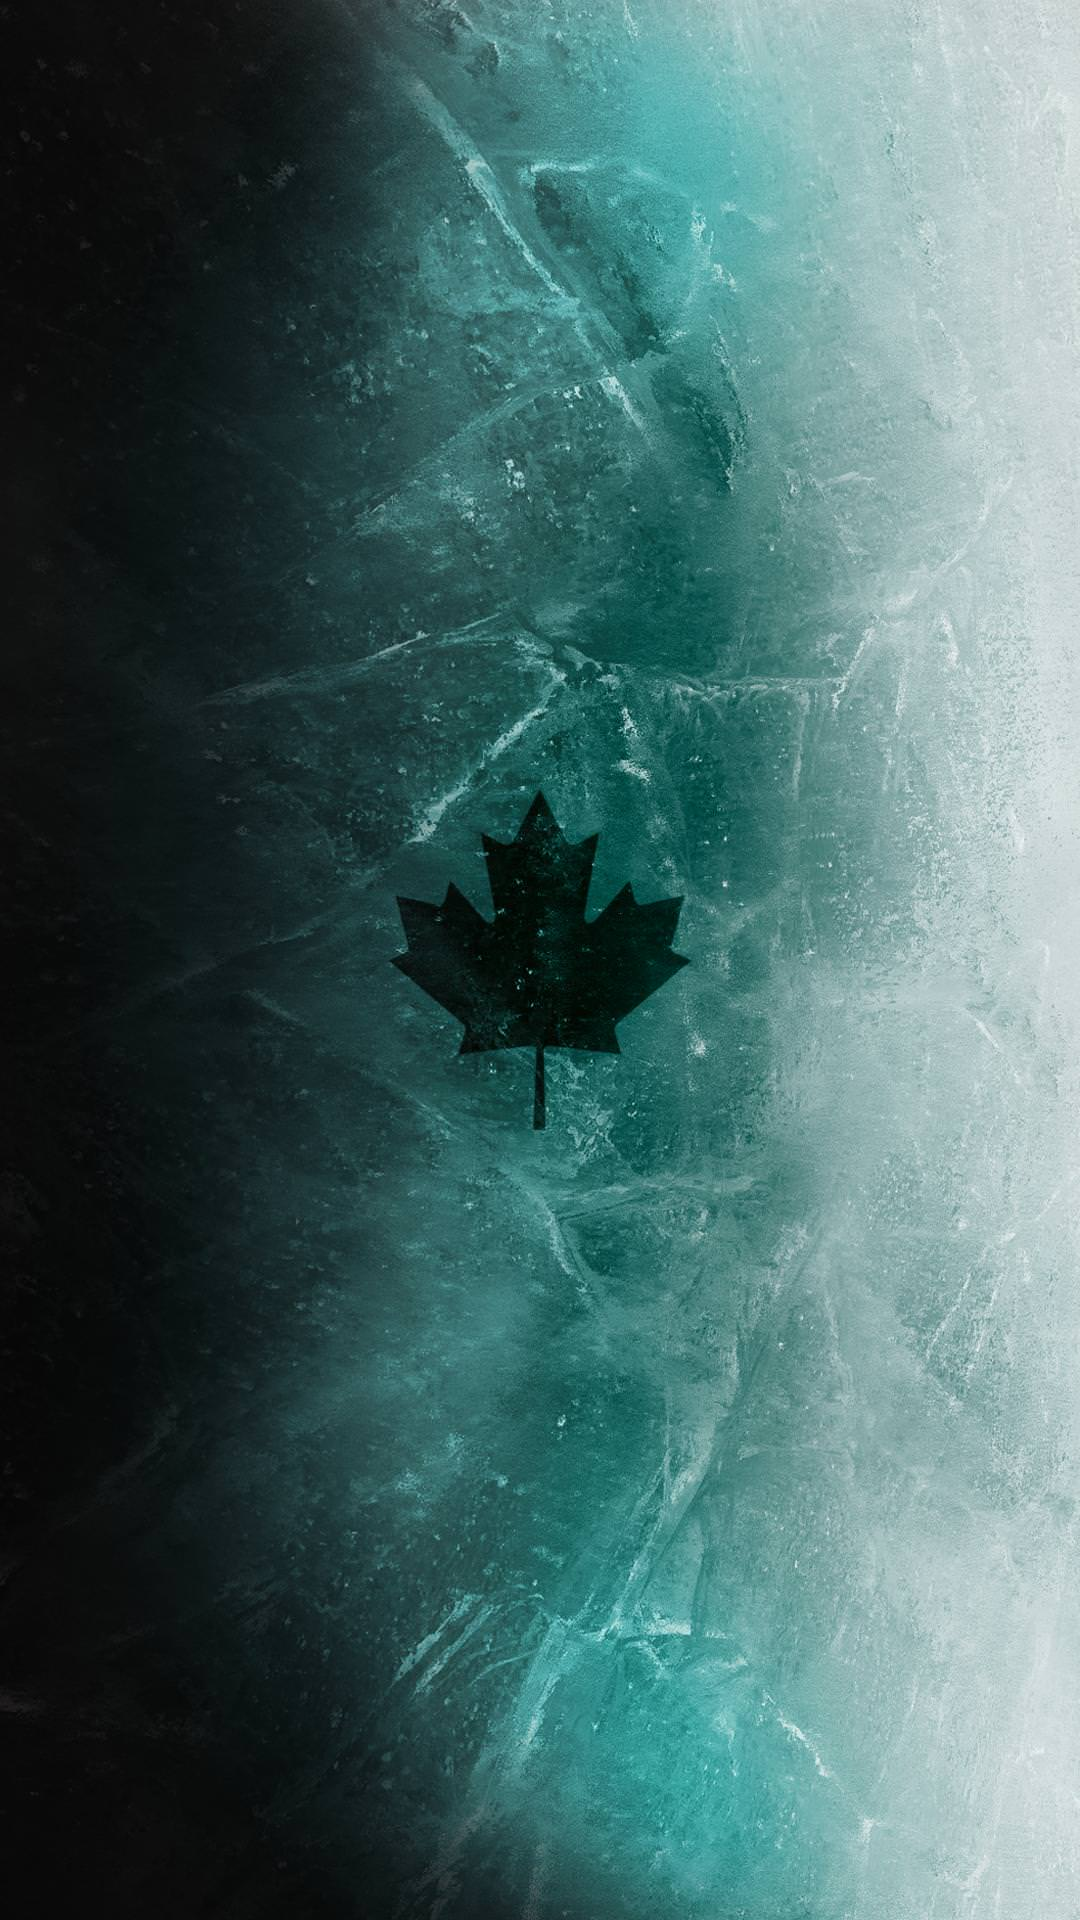 1080x1920 Black Ice Fan Kit artworks made by Mito Designer. Includes ...